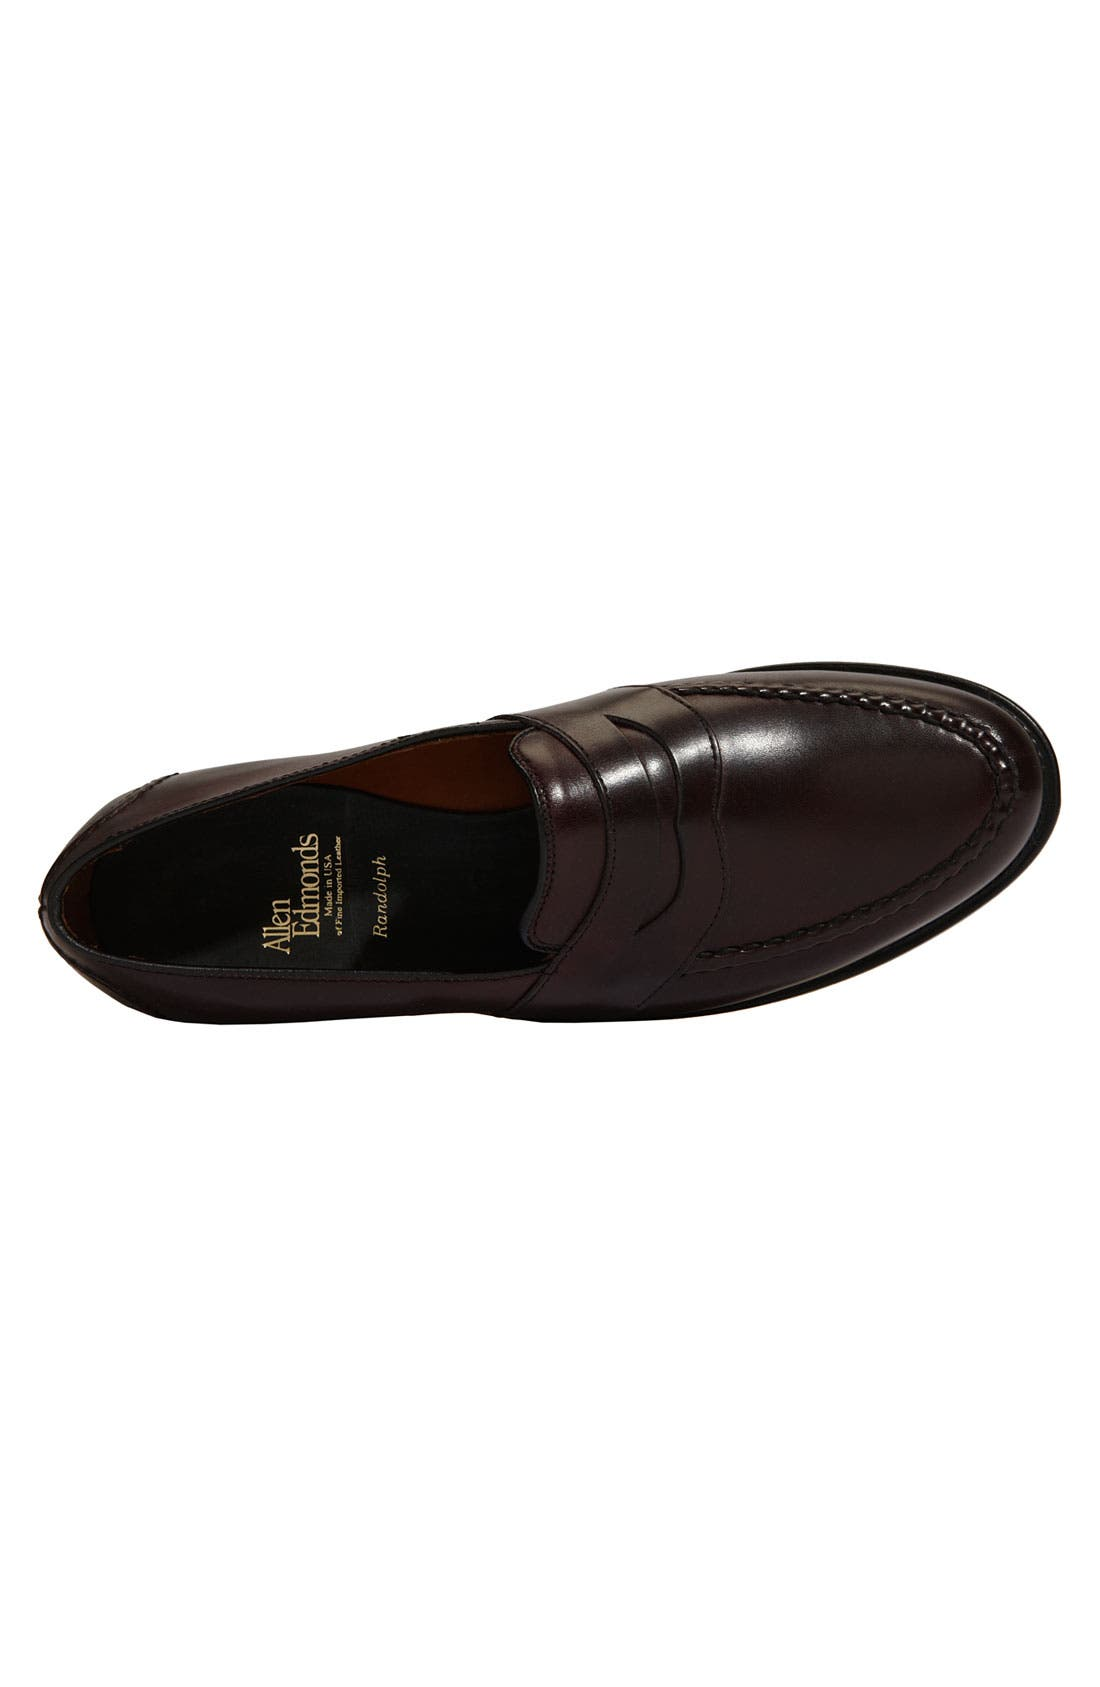 Alternate Image 3  - Allen Edmonds 'Randolph' Loafer (Men)